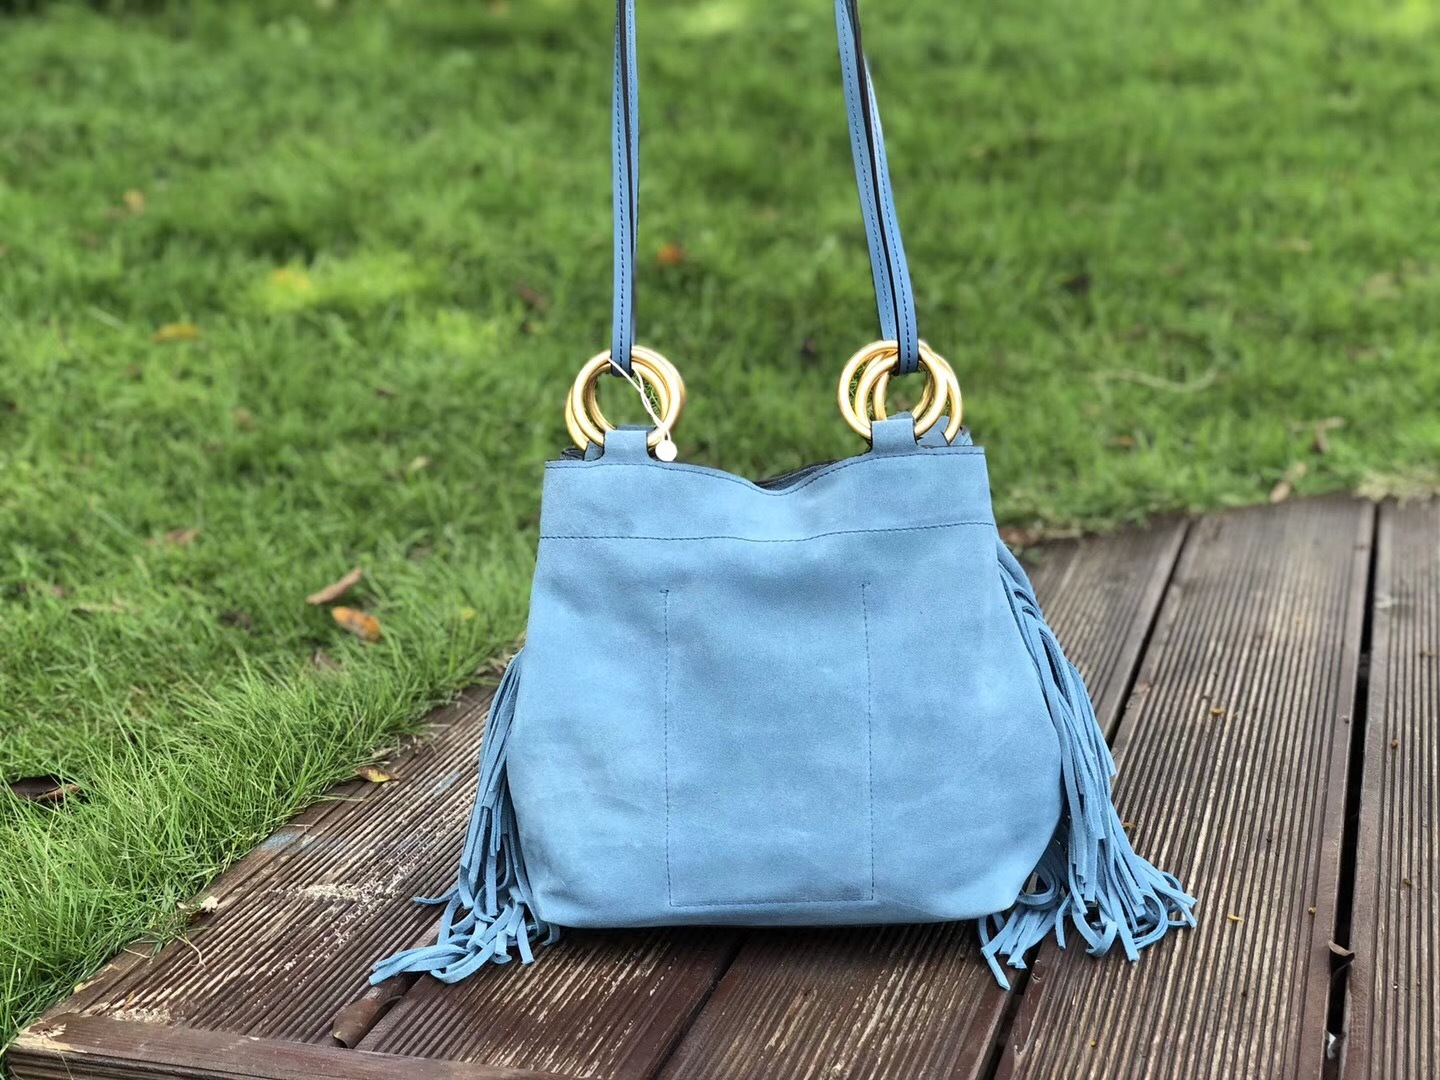 Tory Burch Farrah Fringe Small Suede Tote